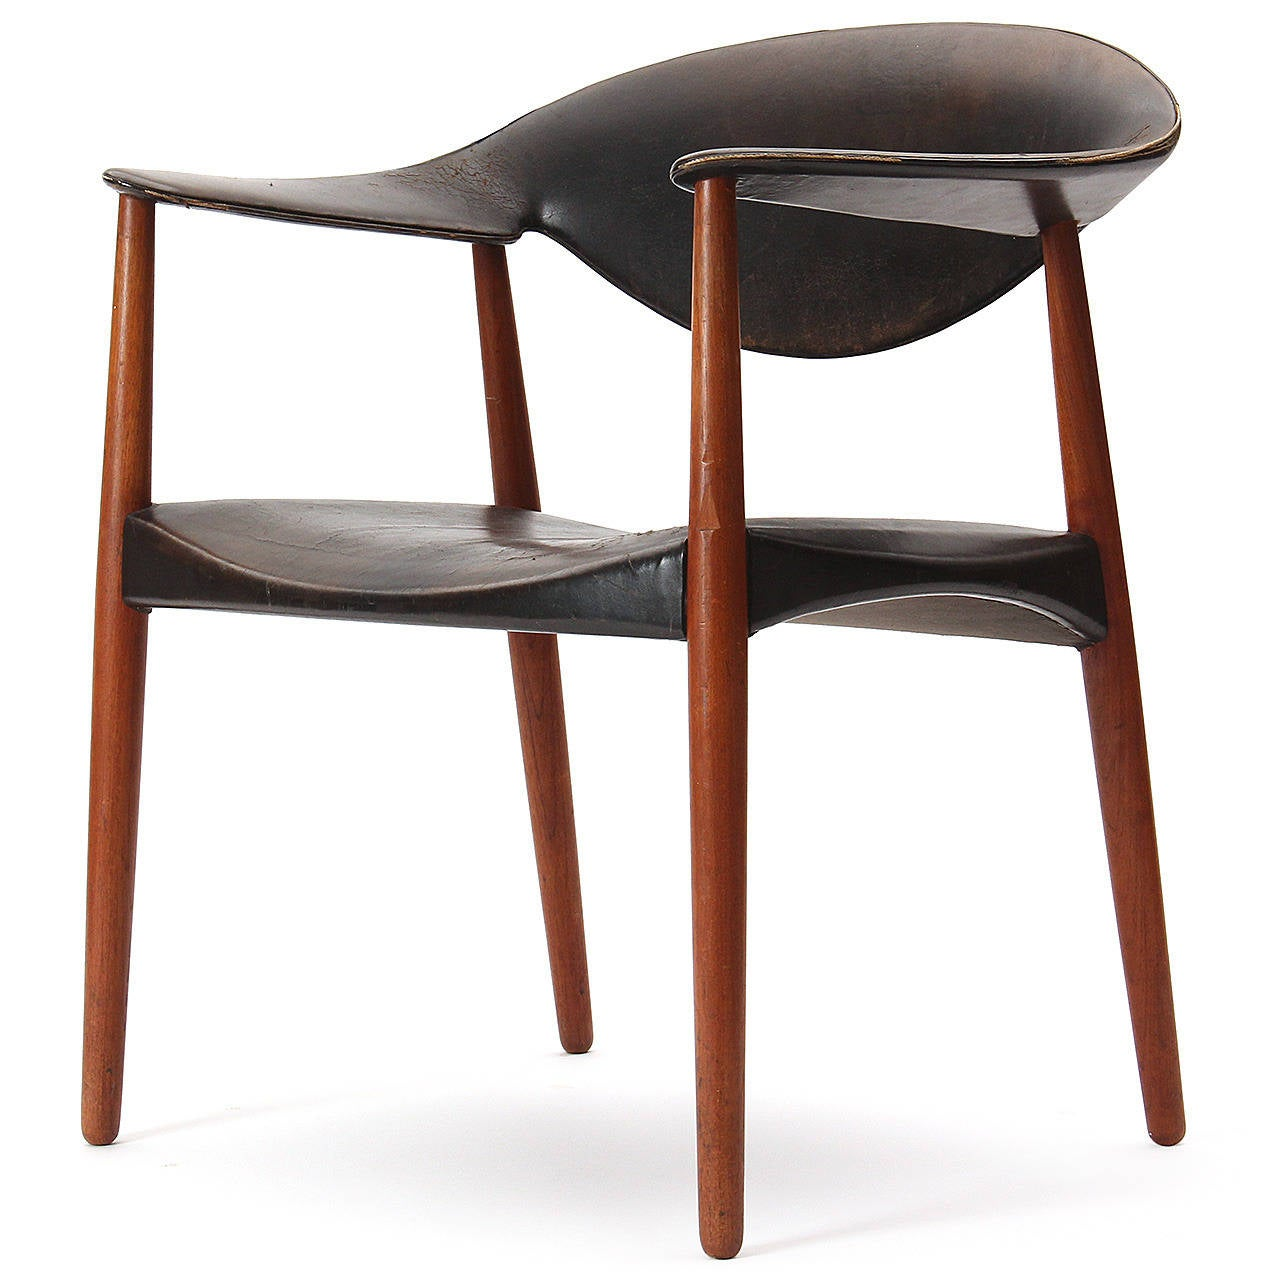 Metropolitan Chair by Larsen and Madsen For Sale at 1stdibs